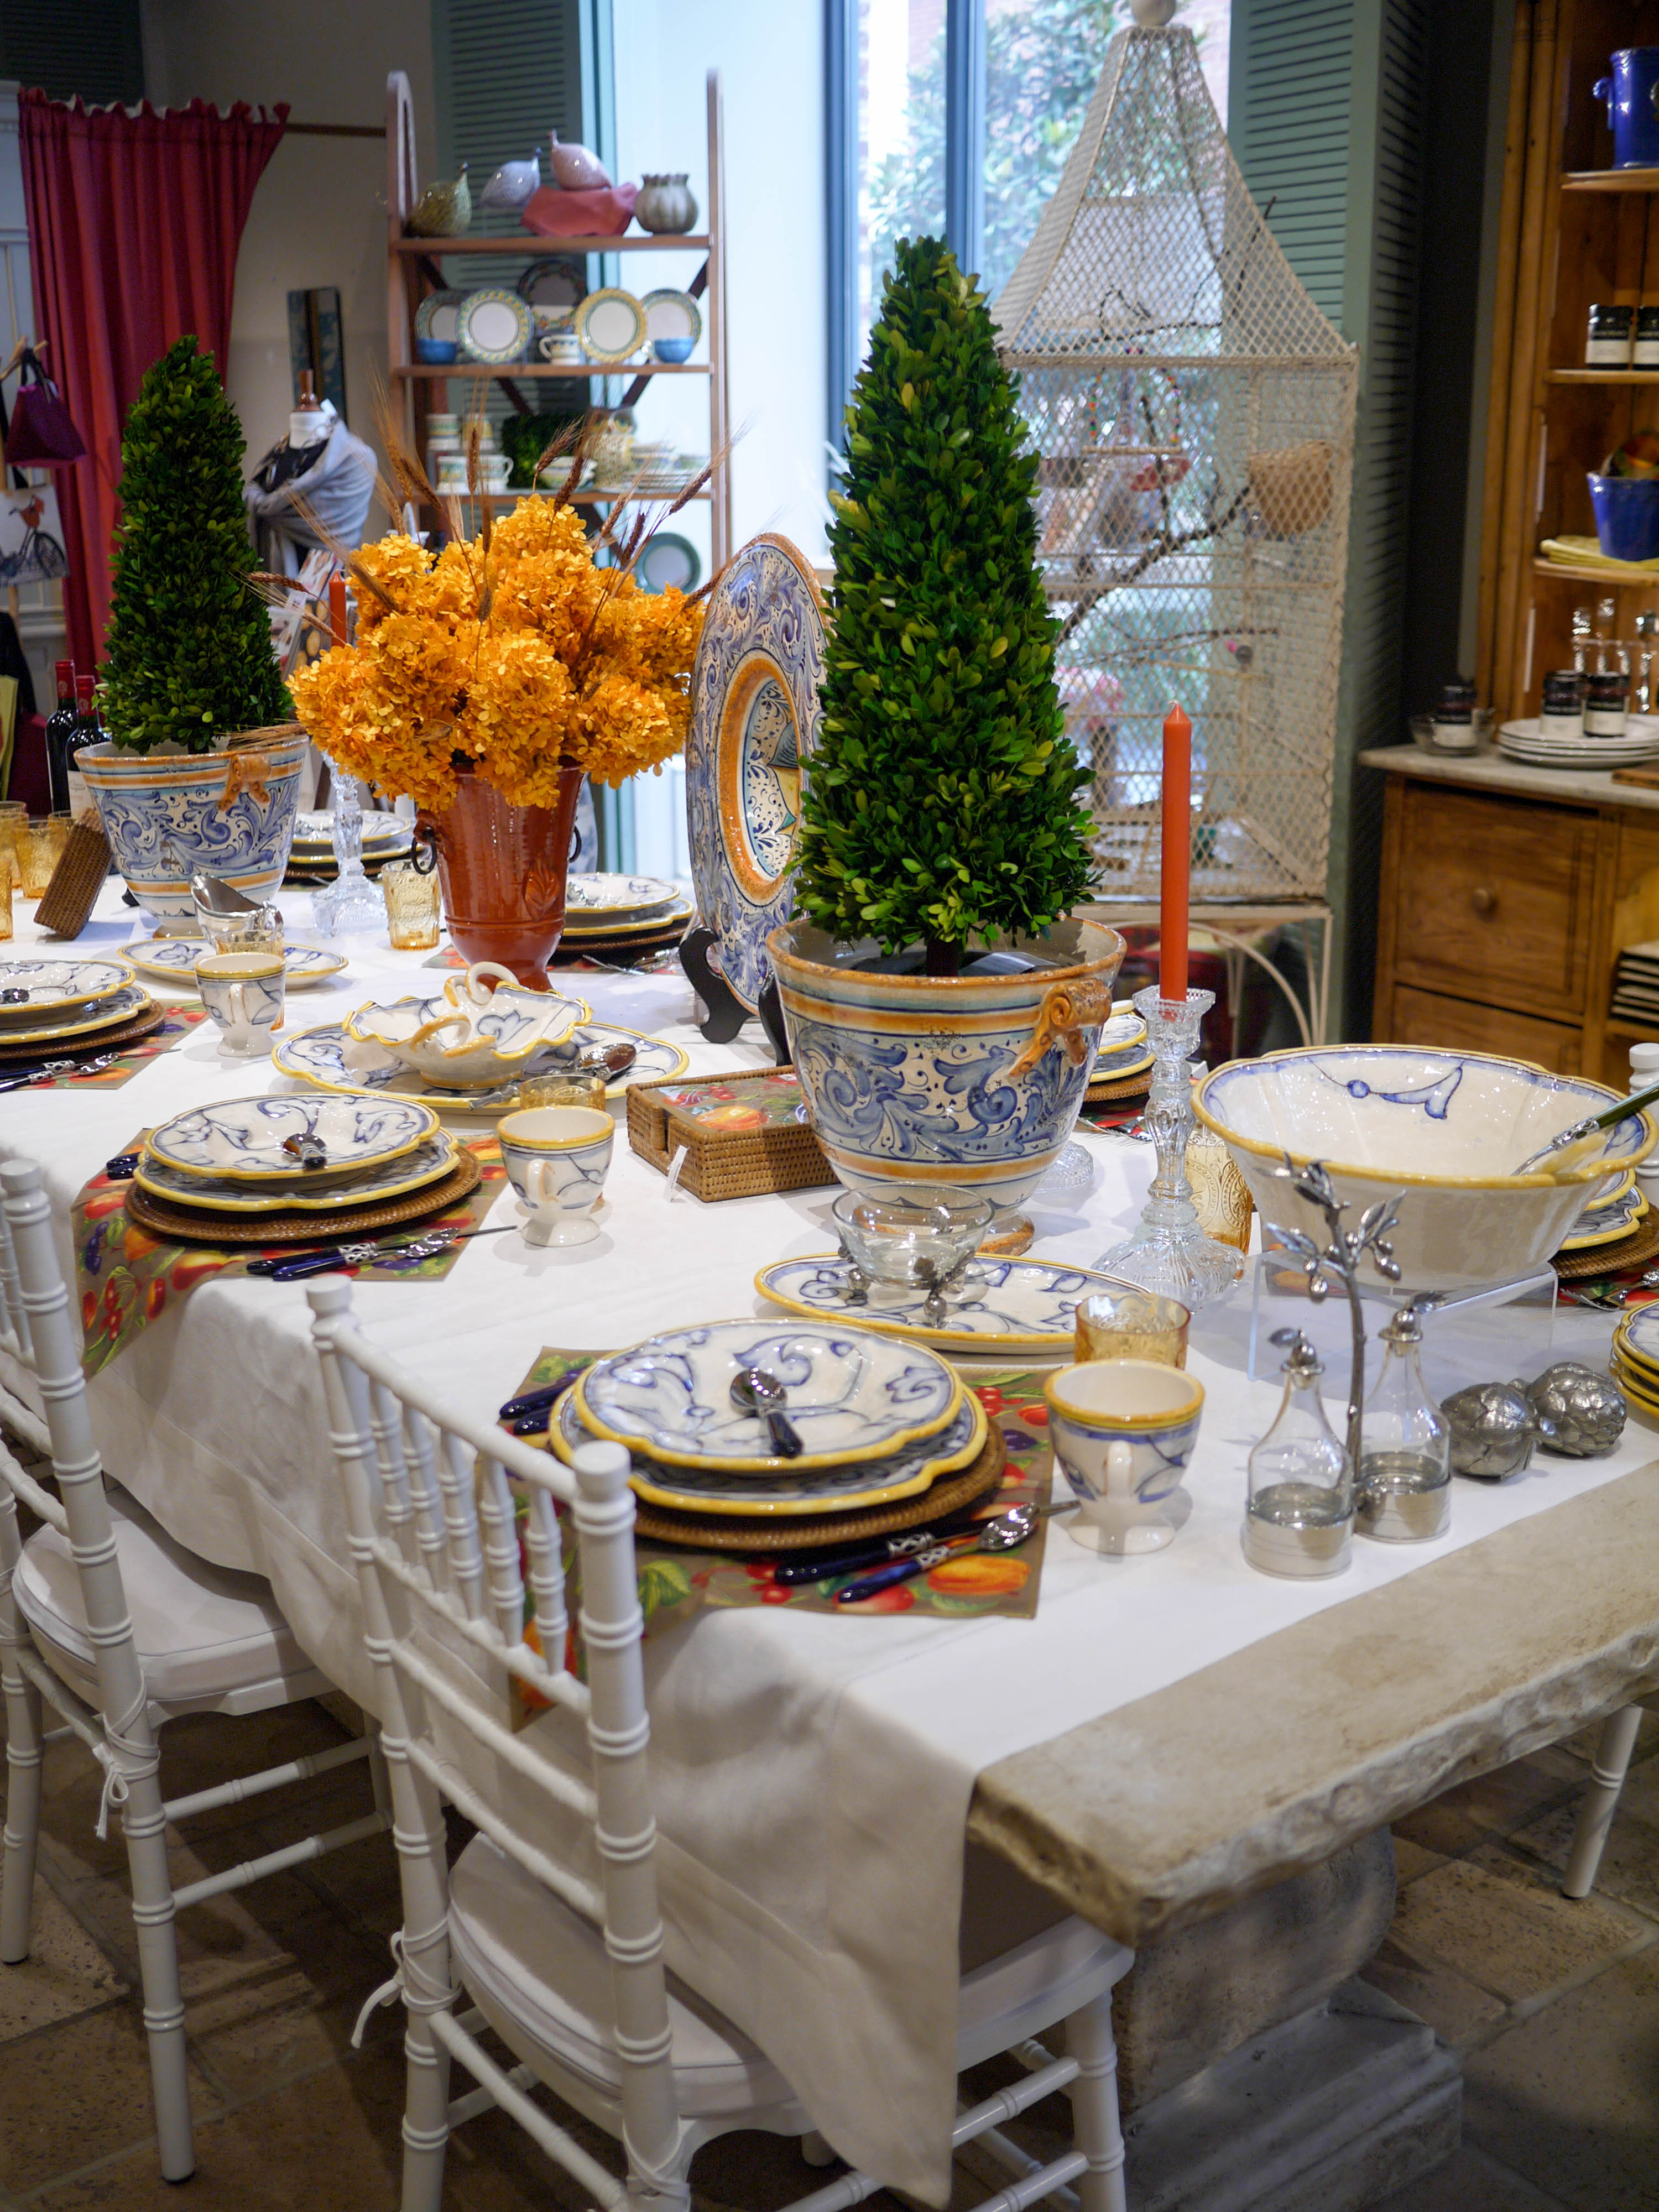 Marvellous caspari with plates and napkins collection for furniture accessories with tina caspary